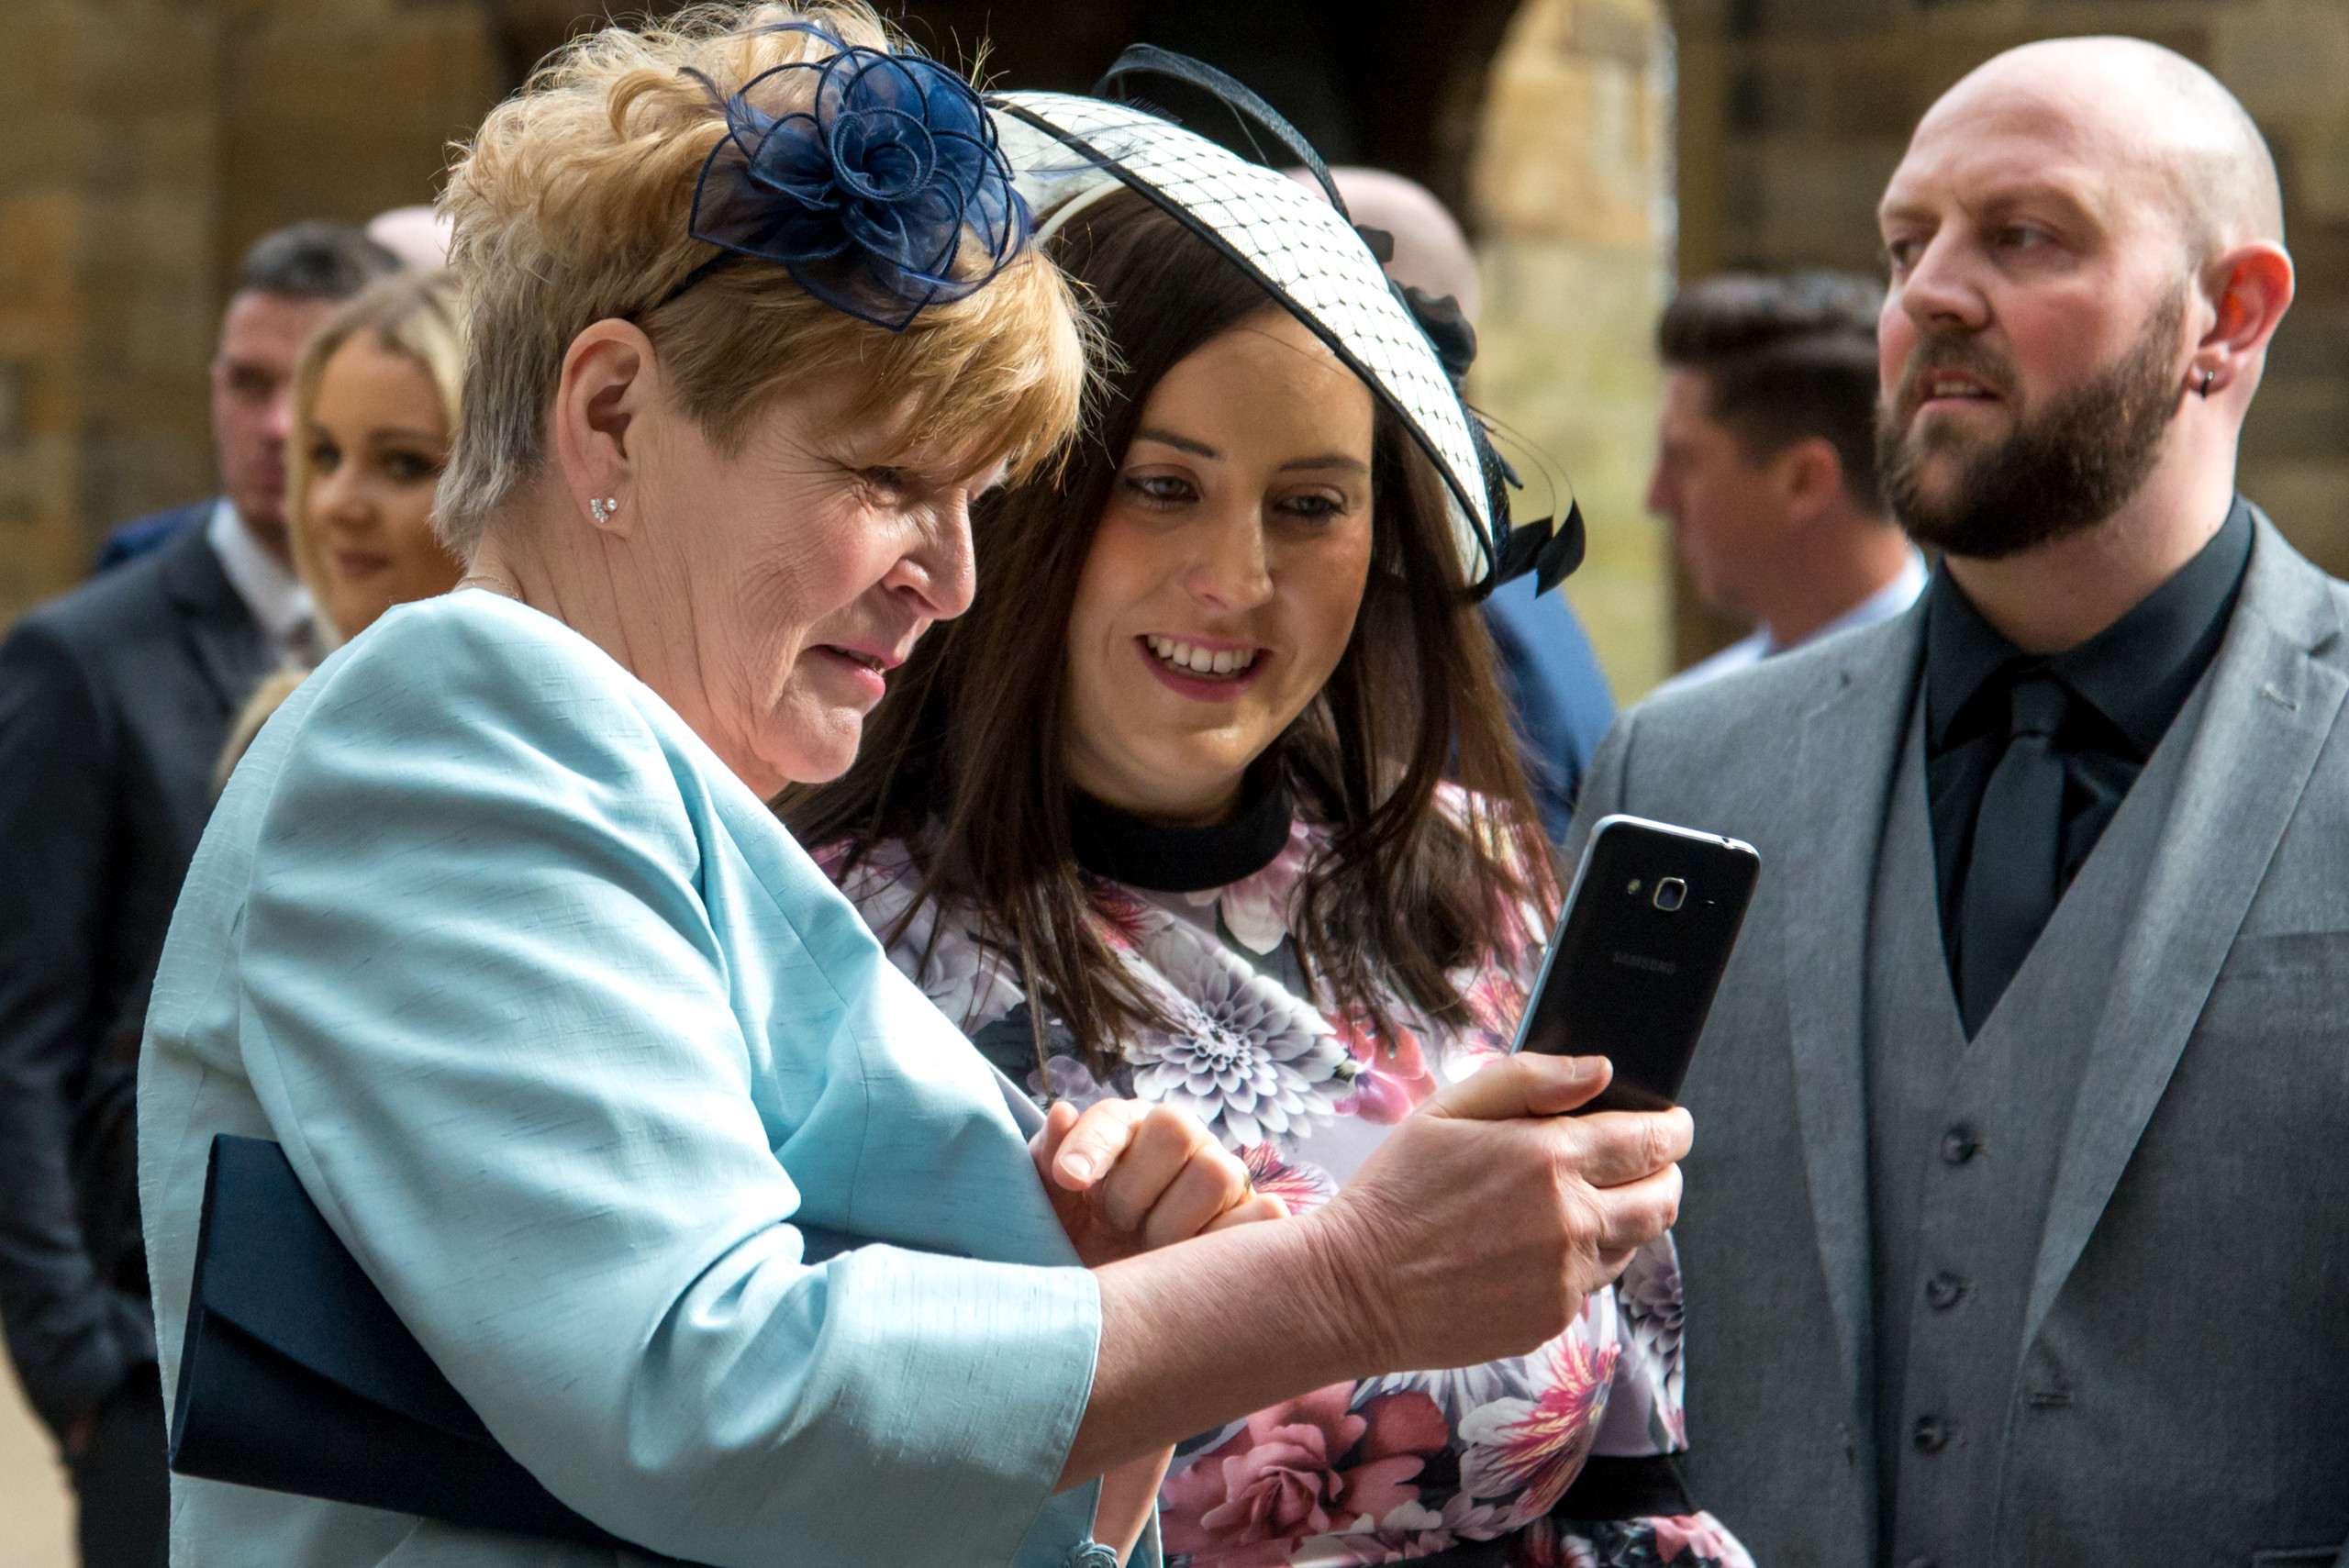 Candid photograph of guests looking at wedding photography on mobile phone on wedding day